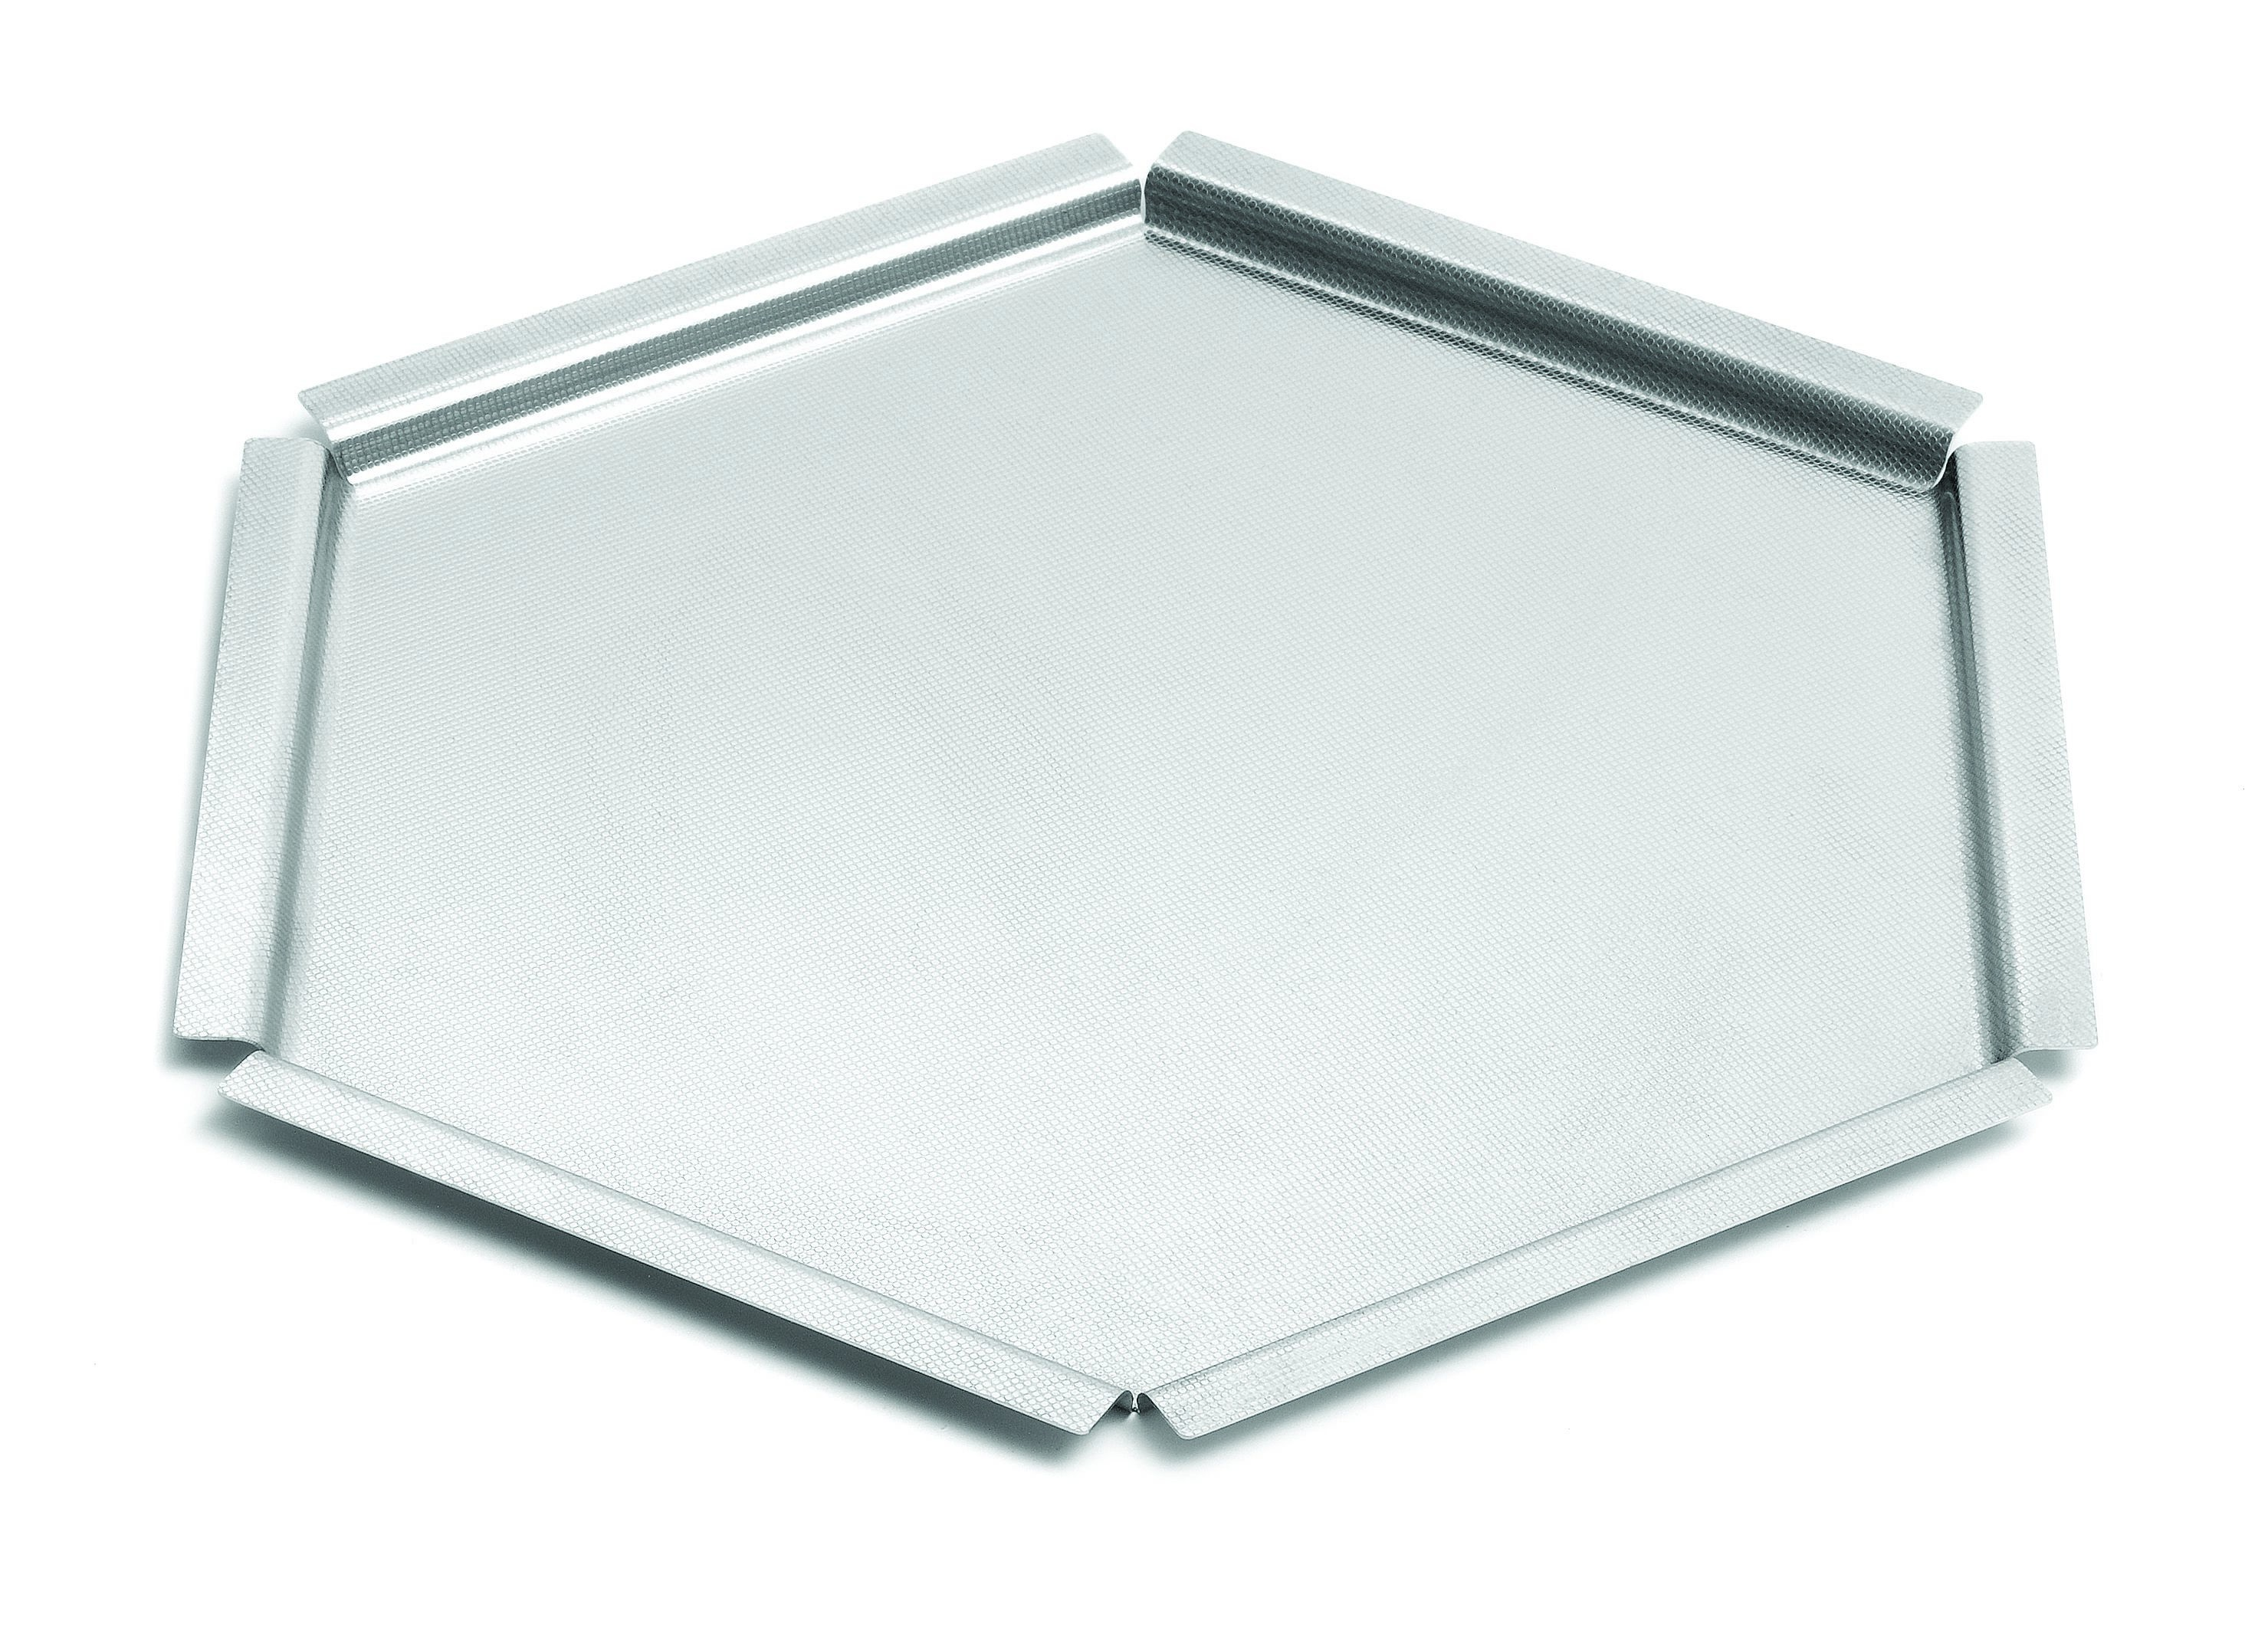 "Rosseto SM119 Honeycomb™ Small Textured Stainless Steel Tray Surface 14"" c 14"" x 1.5""H"